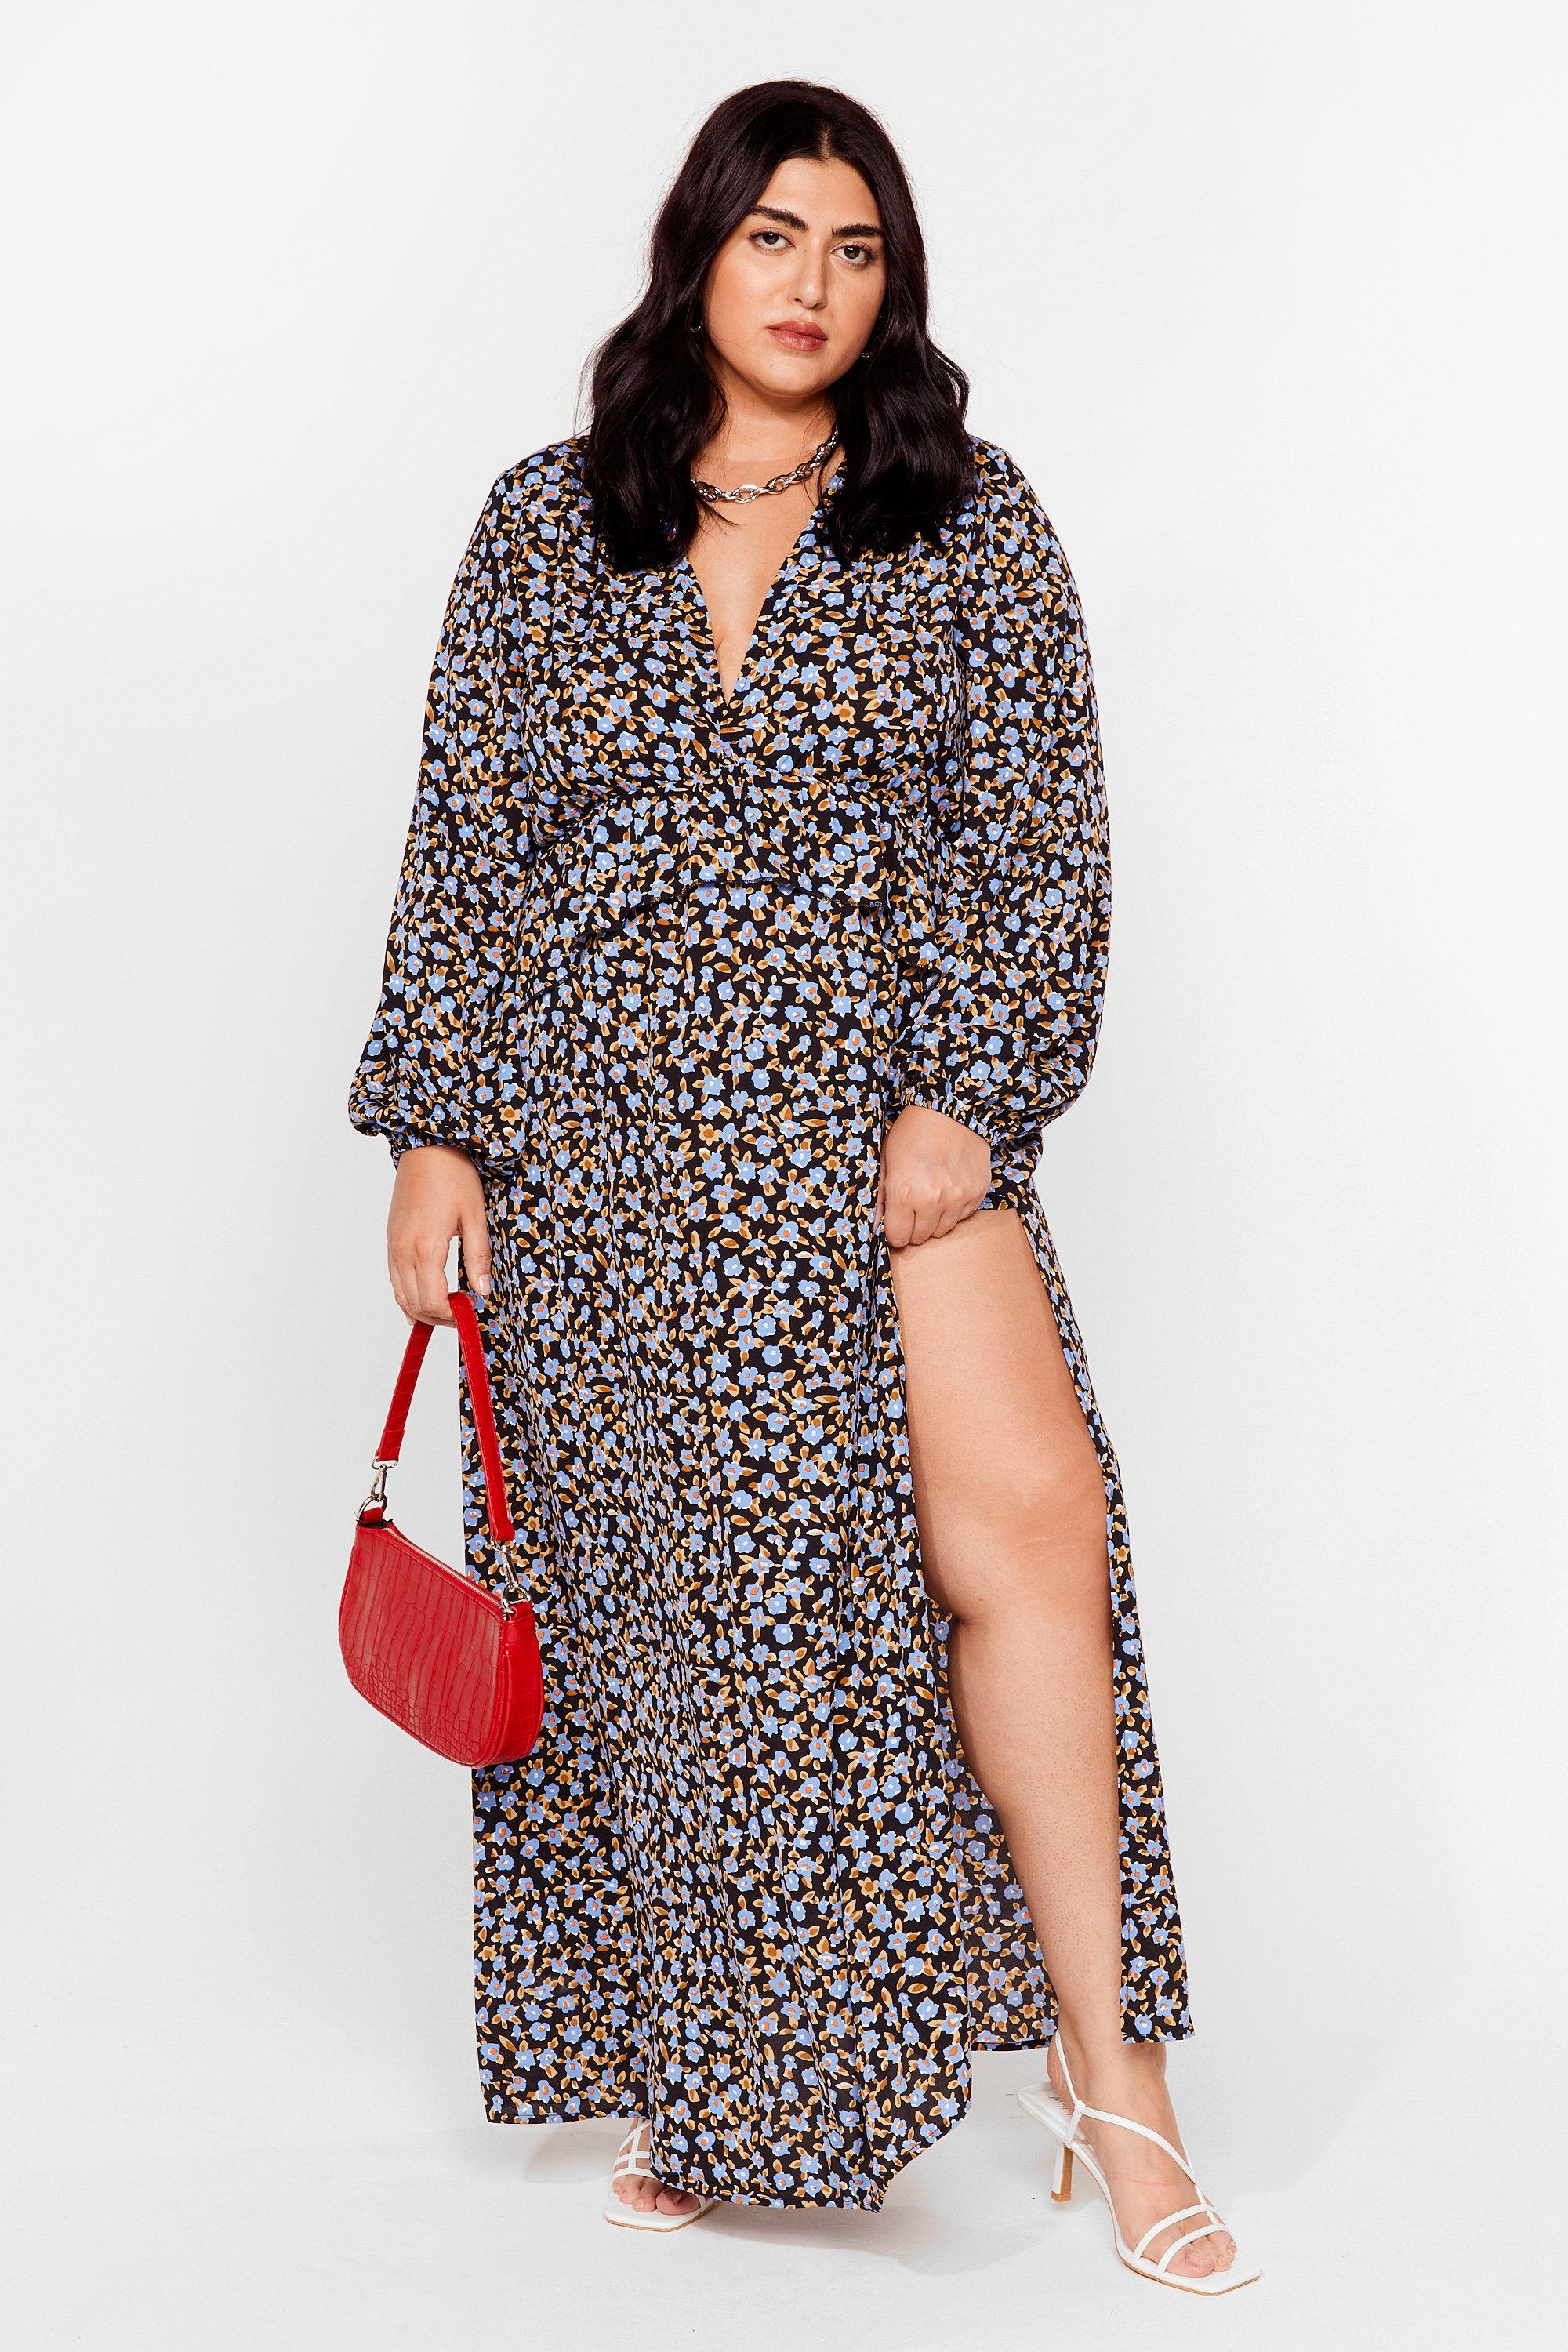 Airs and Graces Plus Floral Maxi Dress 7